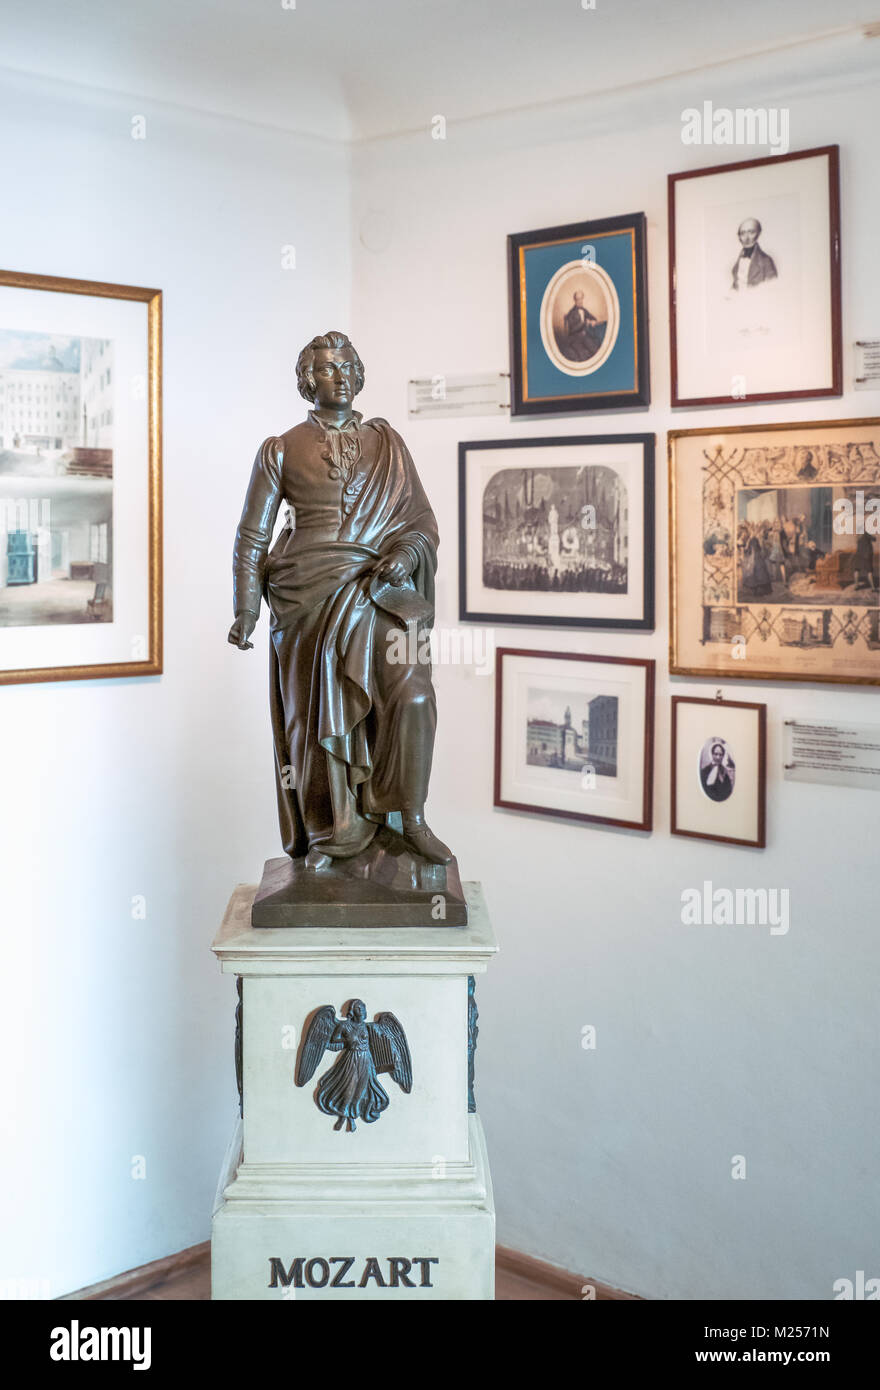 Austria, Salzburg, A statue of the musician and old memories in  the W. A. Mozart home - Stock Image